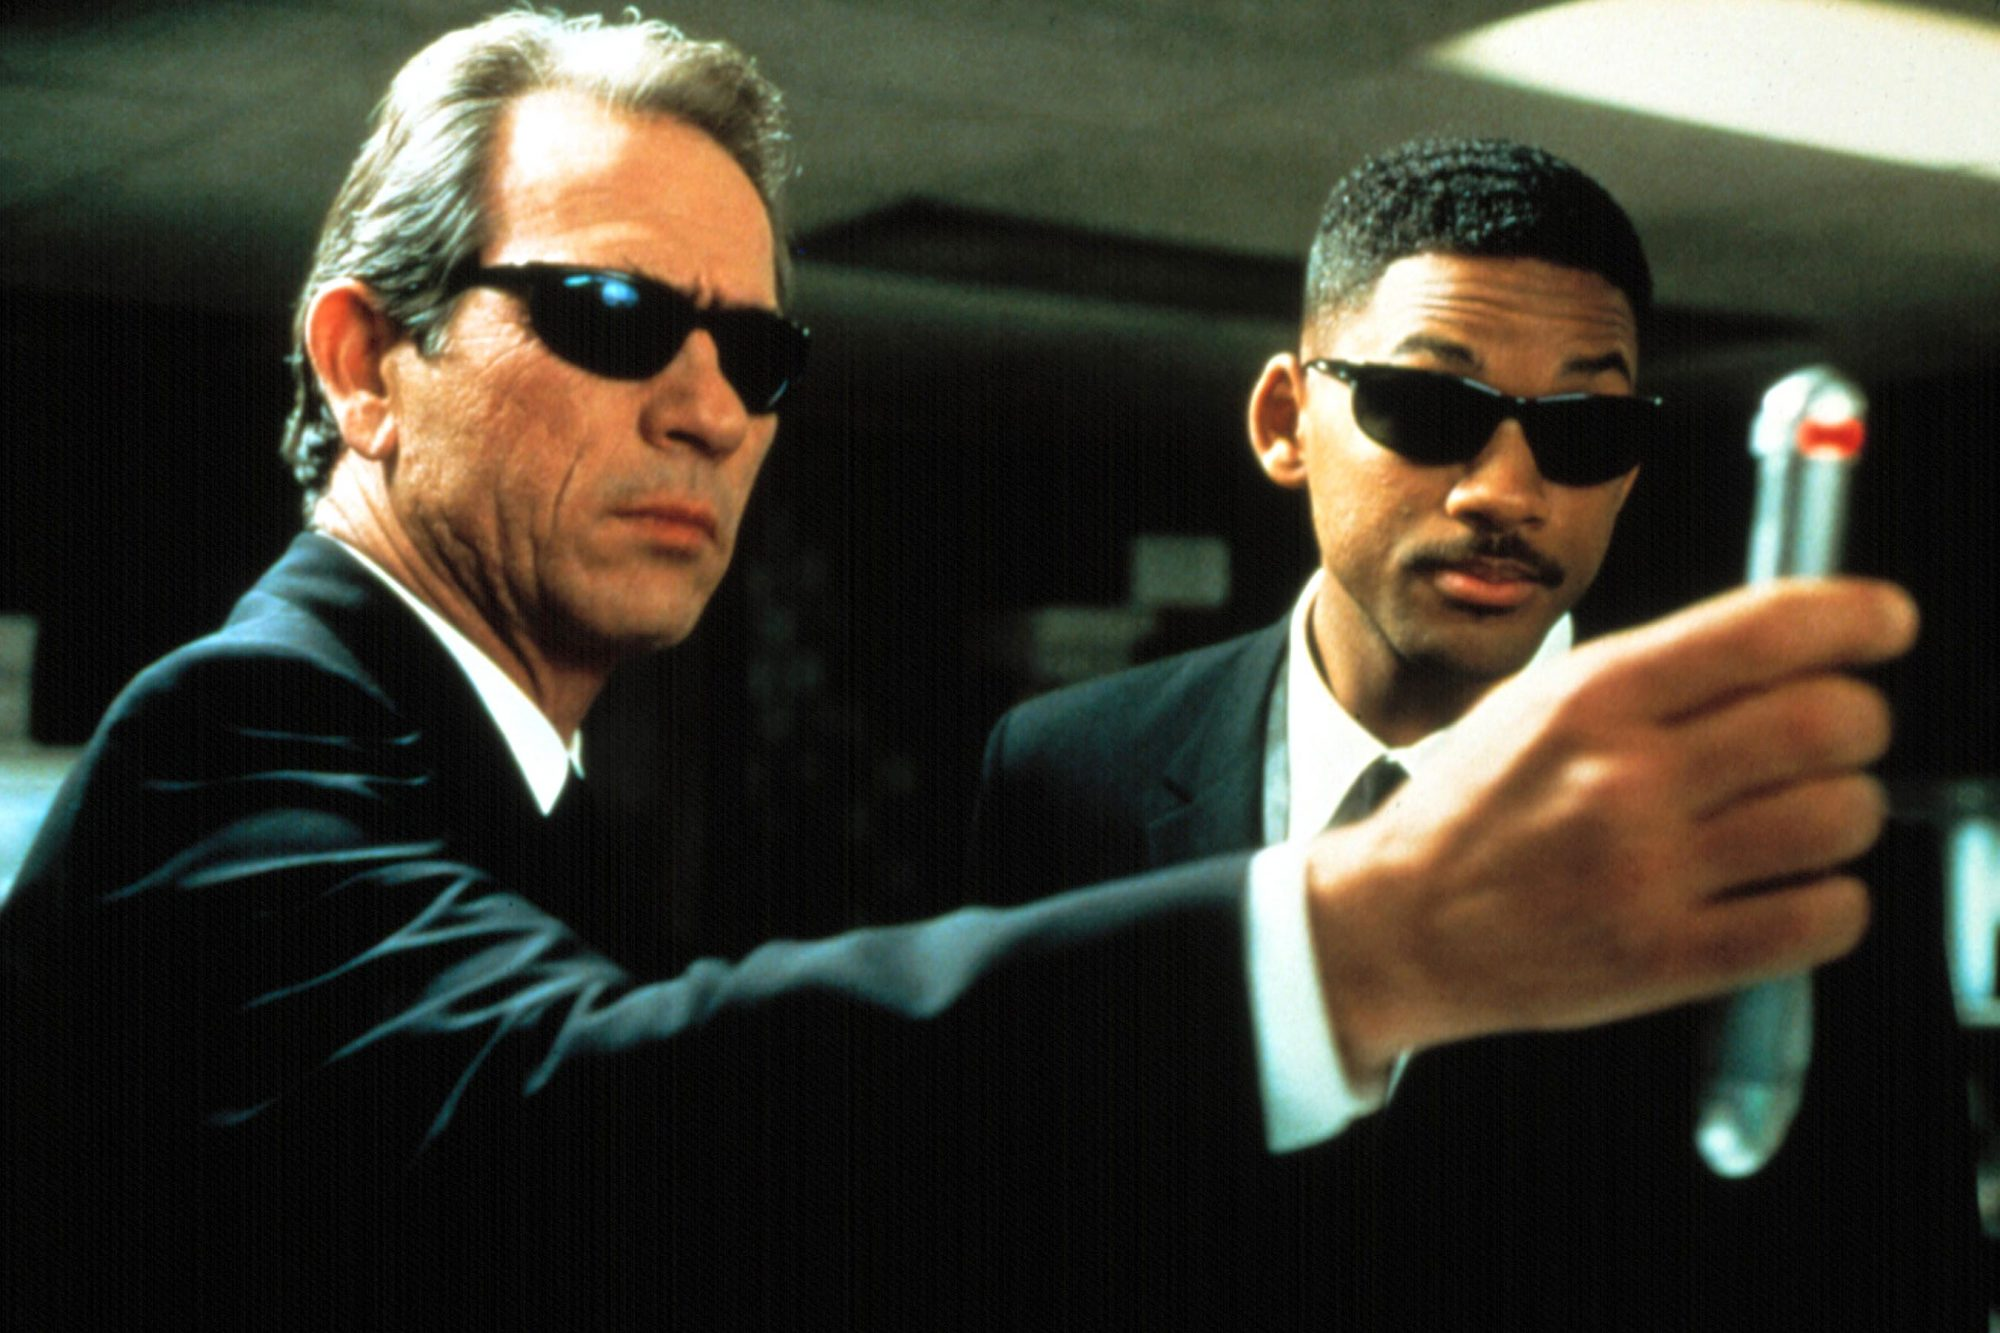 MEN IN BLACK, Tommy Lee Jones, Will Smith, 1997. (c) Columbia Pictures/ Courtesy: Everett Collection